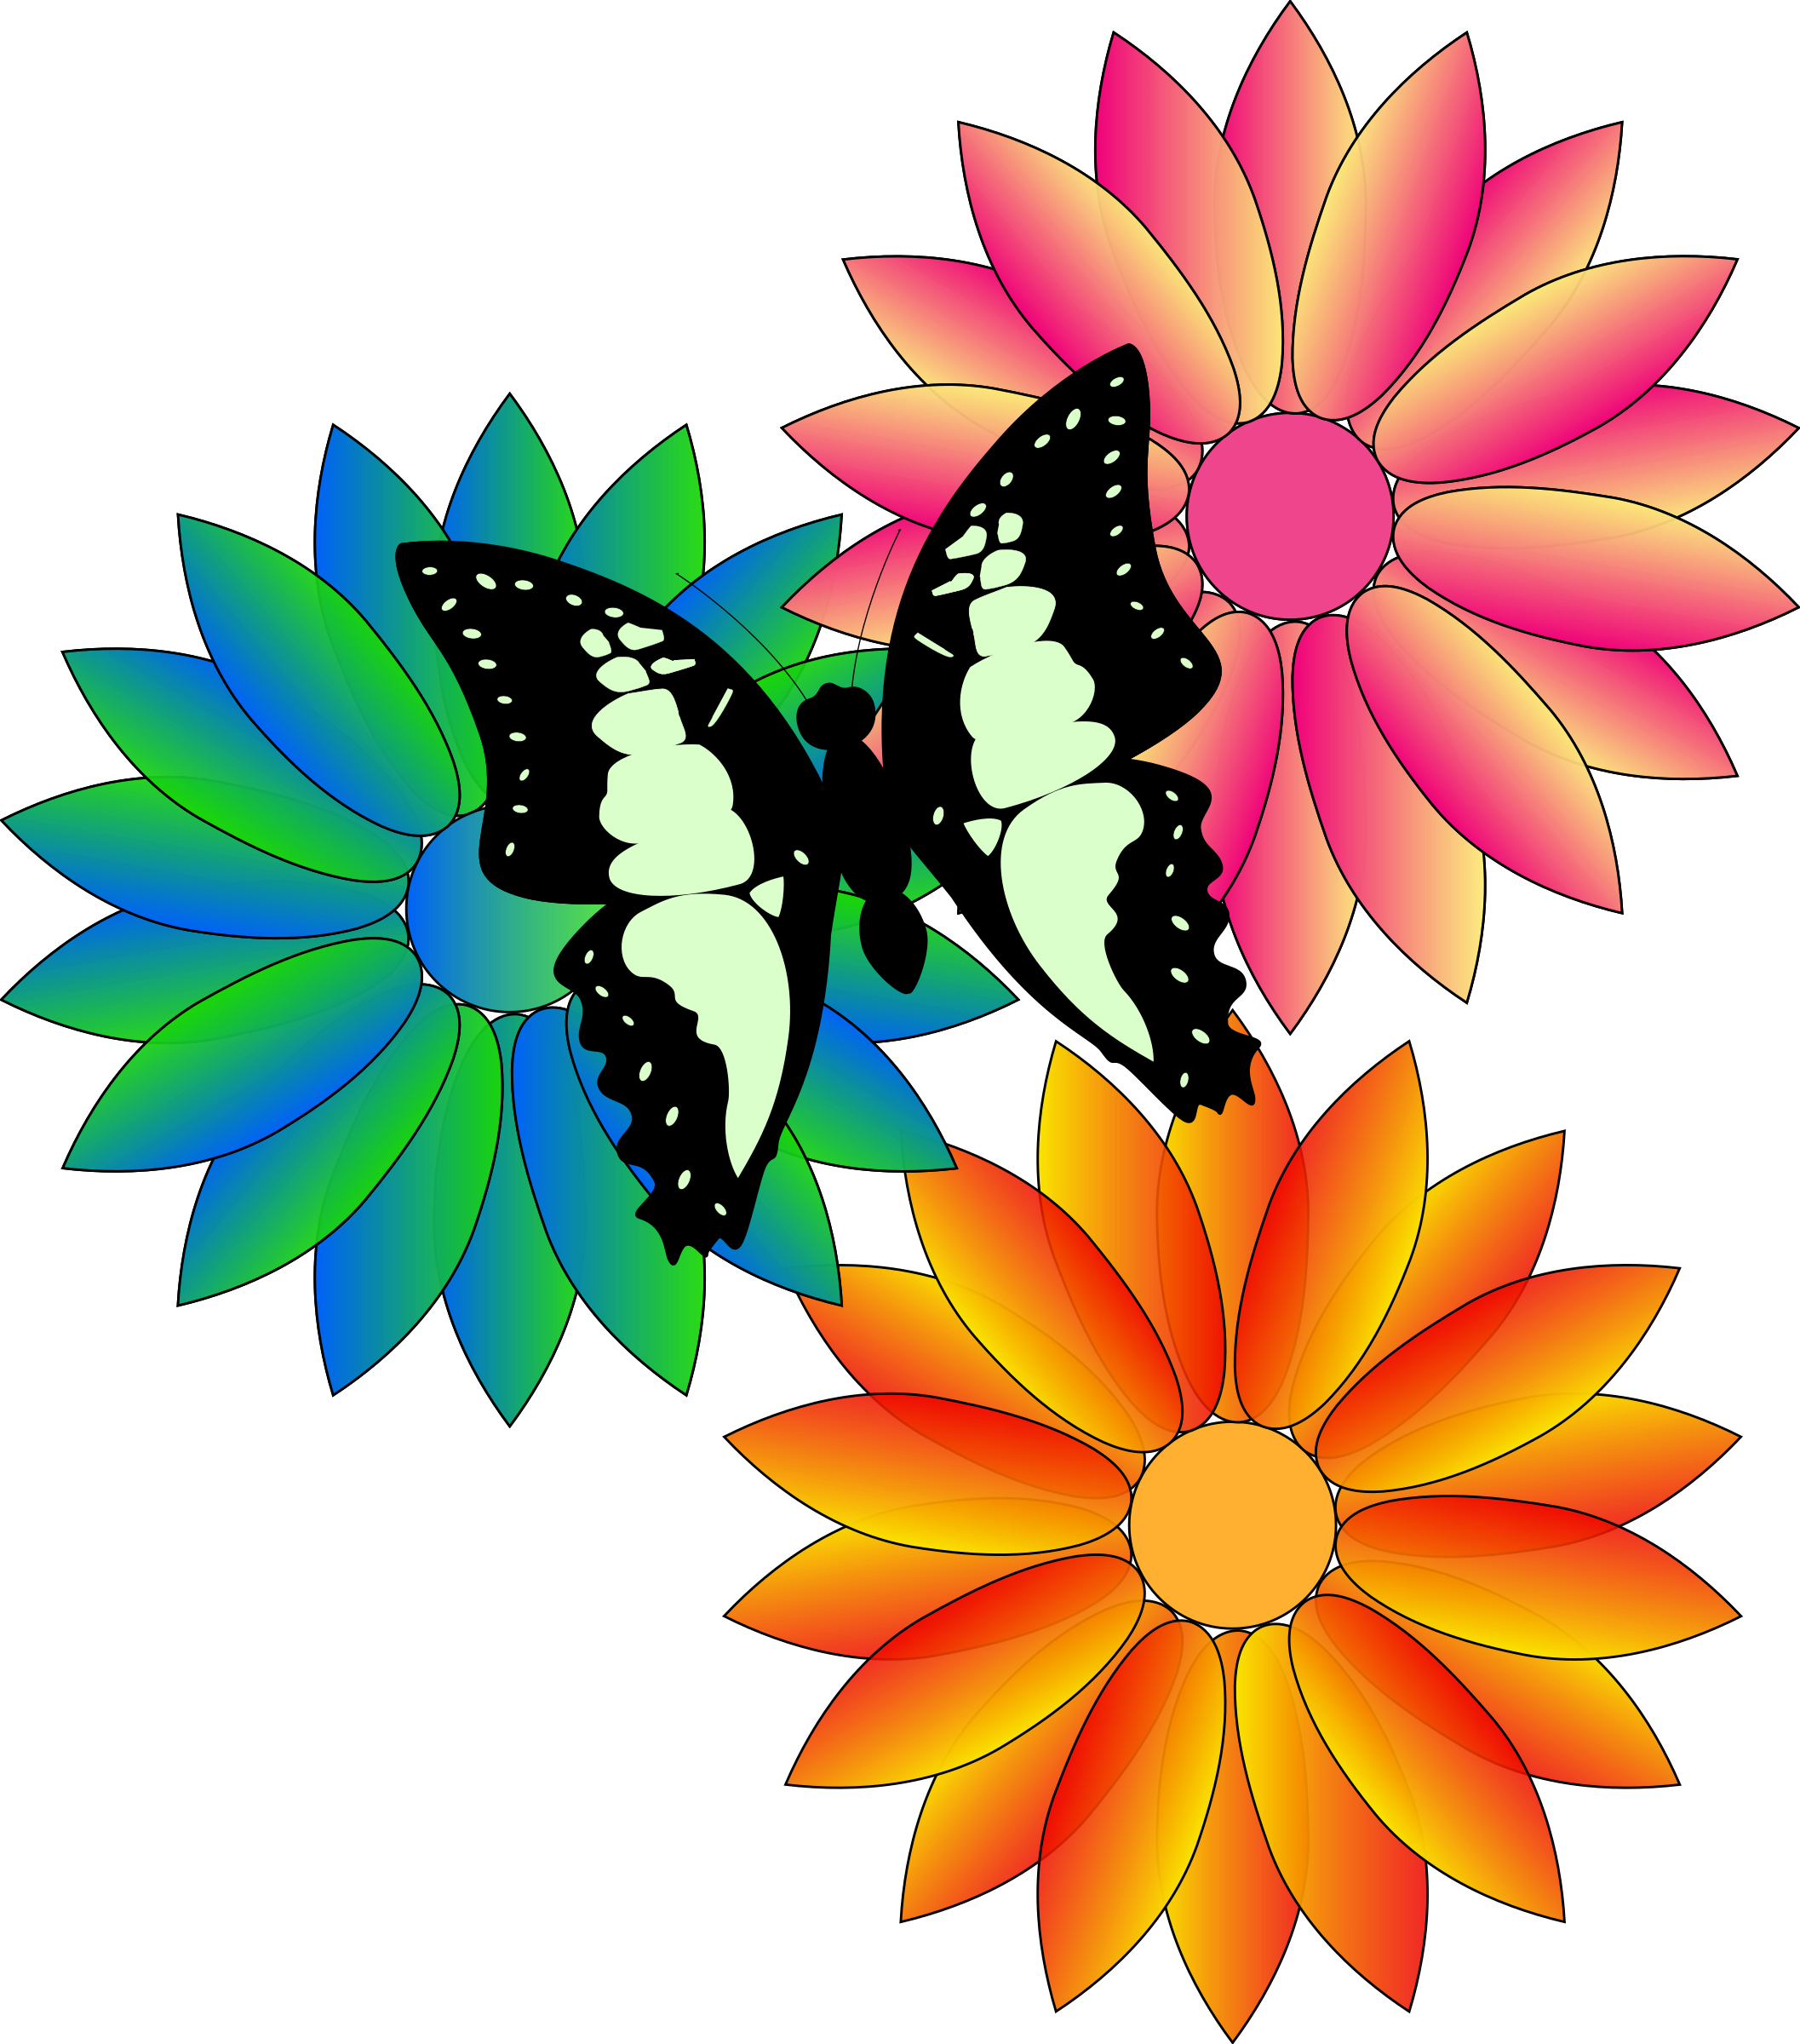 May flowers clip art spring.